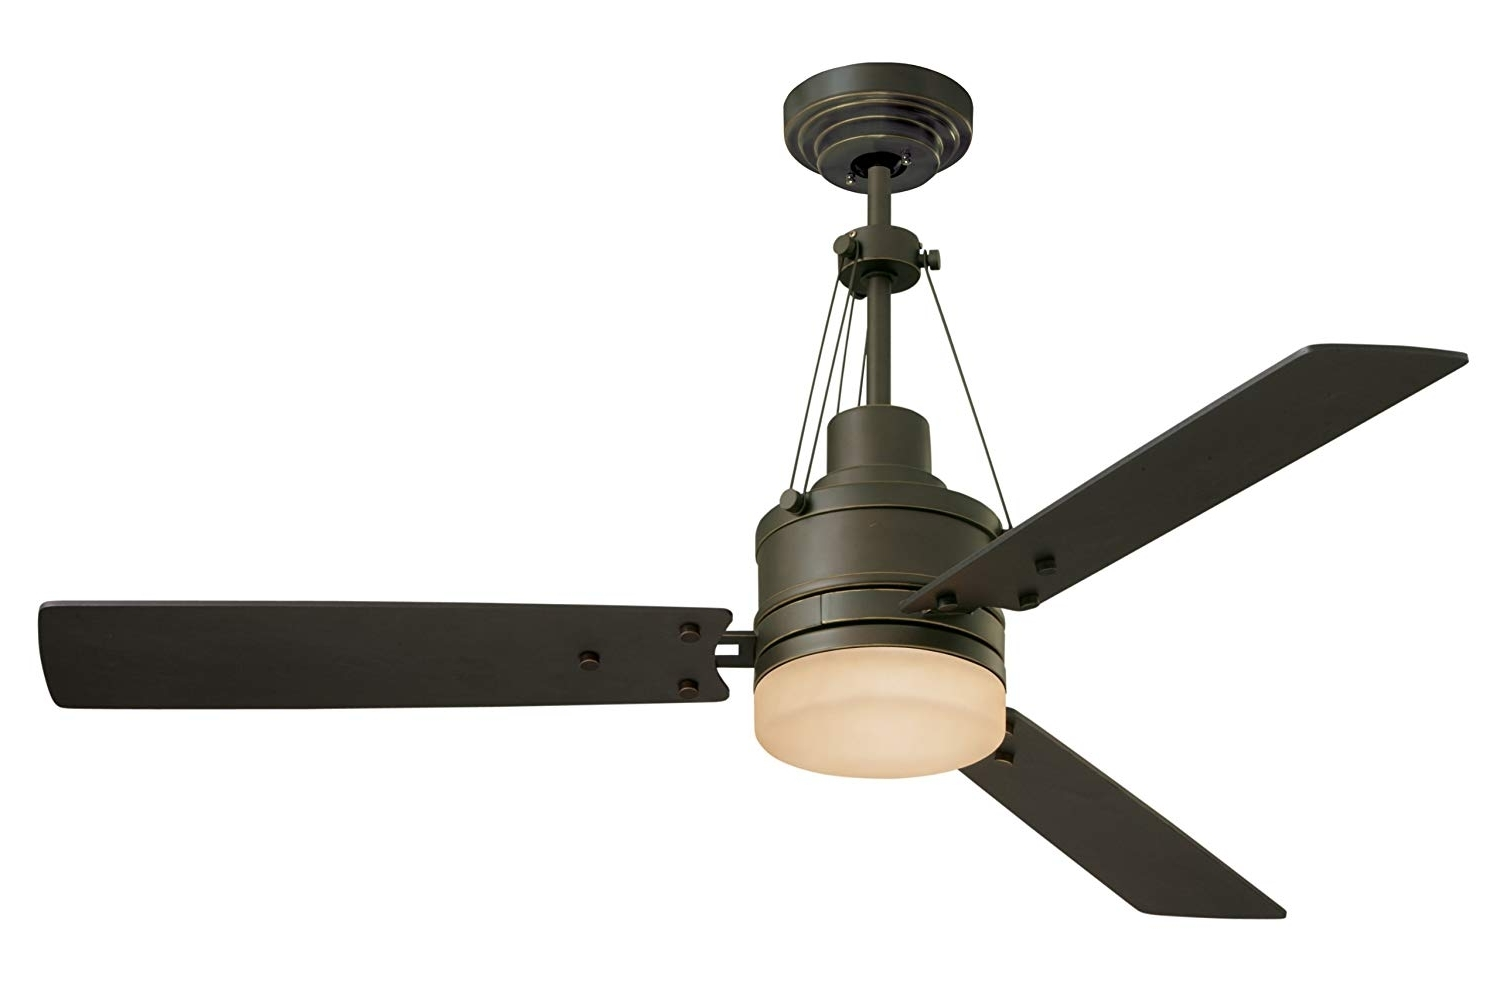 Amazon Outdoor Ceiling Fans With Lights Intended For 2019 Appealing Emerson Ceiling Fans In Cf205Ges Fan With Light And Remote (View 4 of 20)